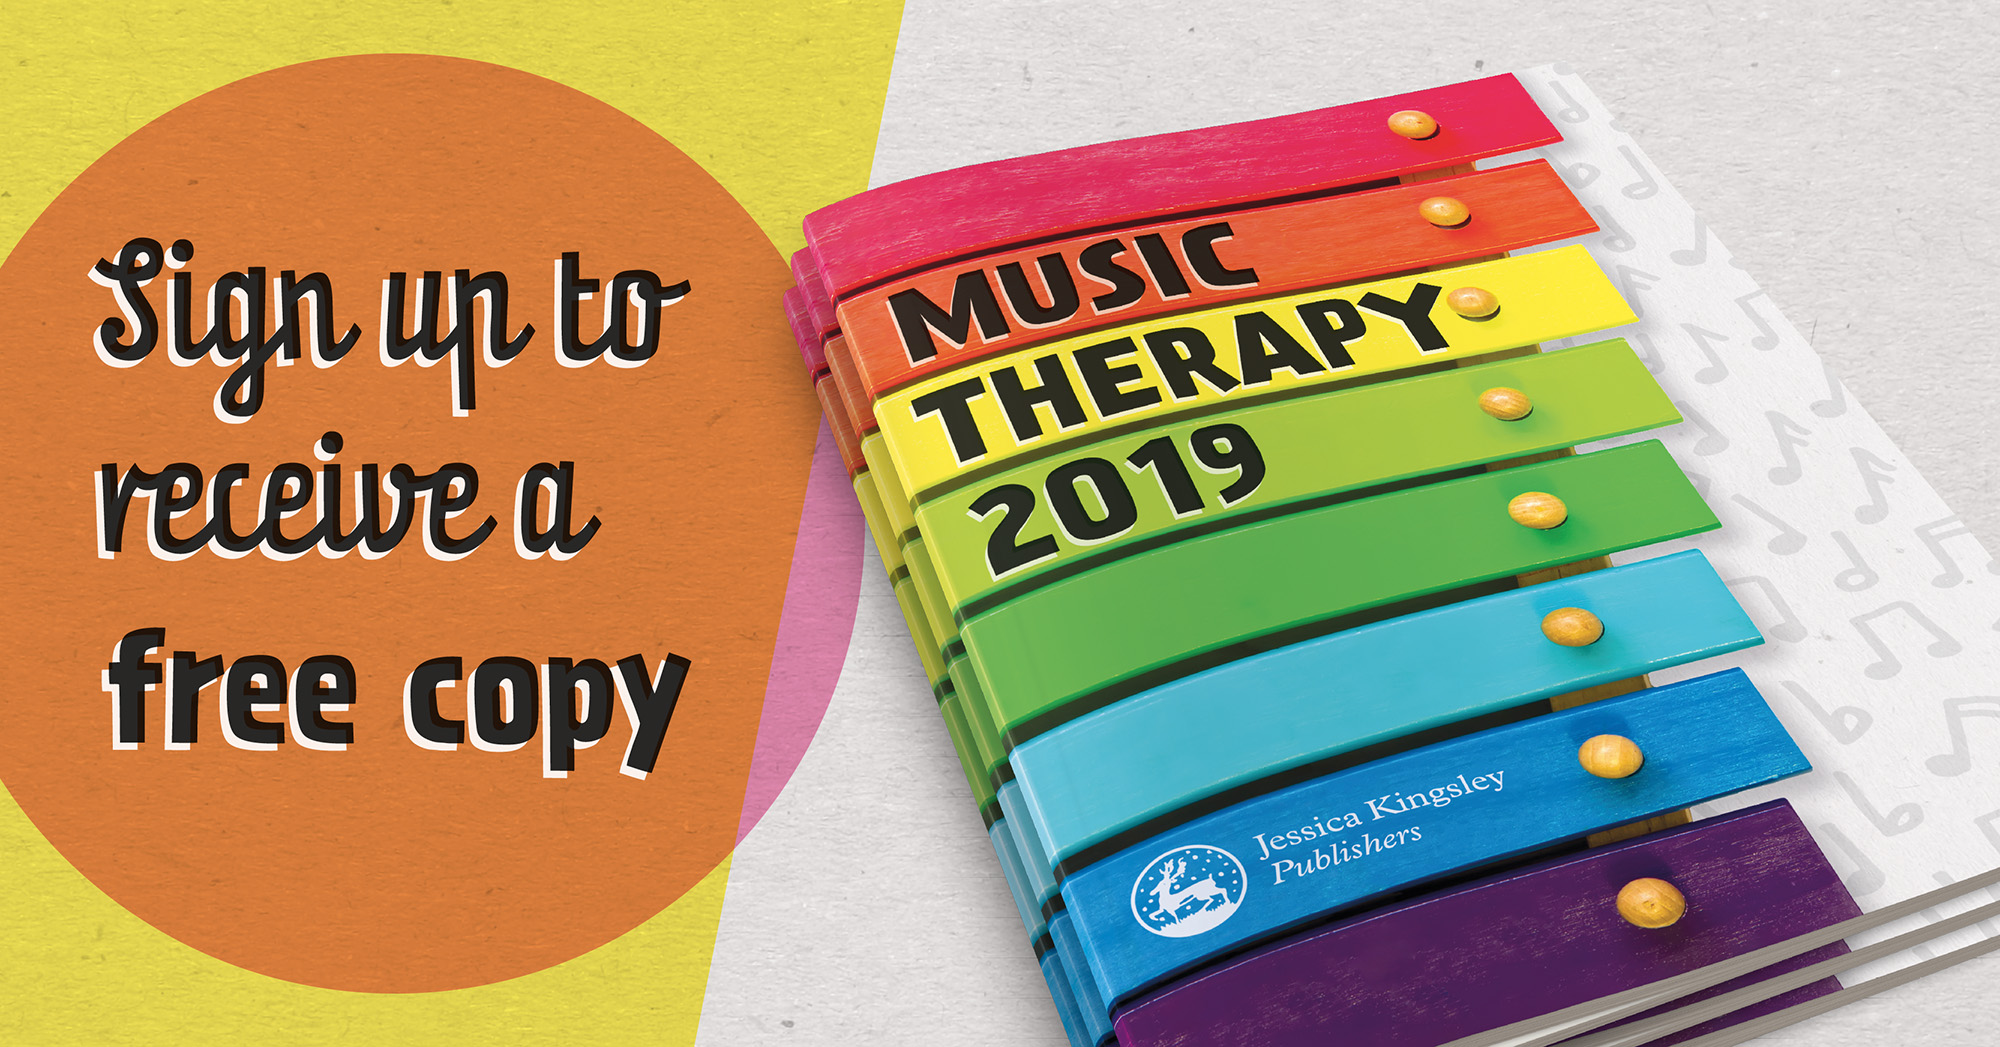 sign up music therapy catalogue